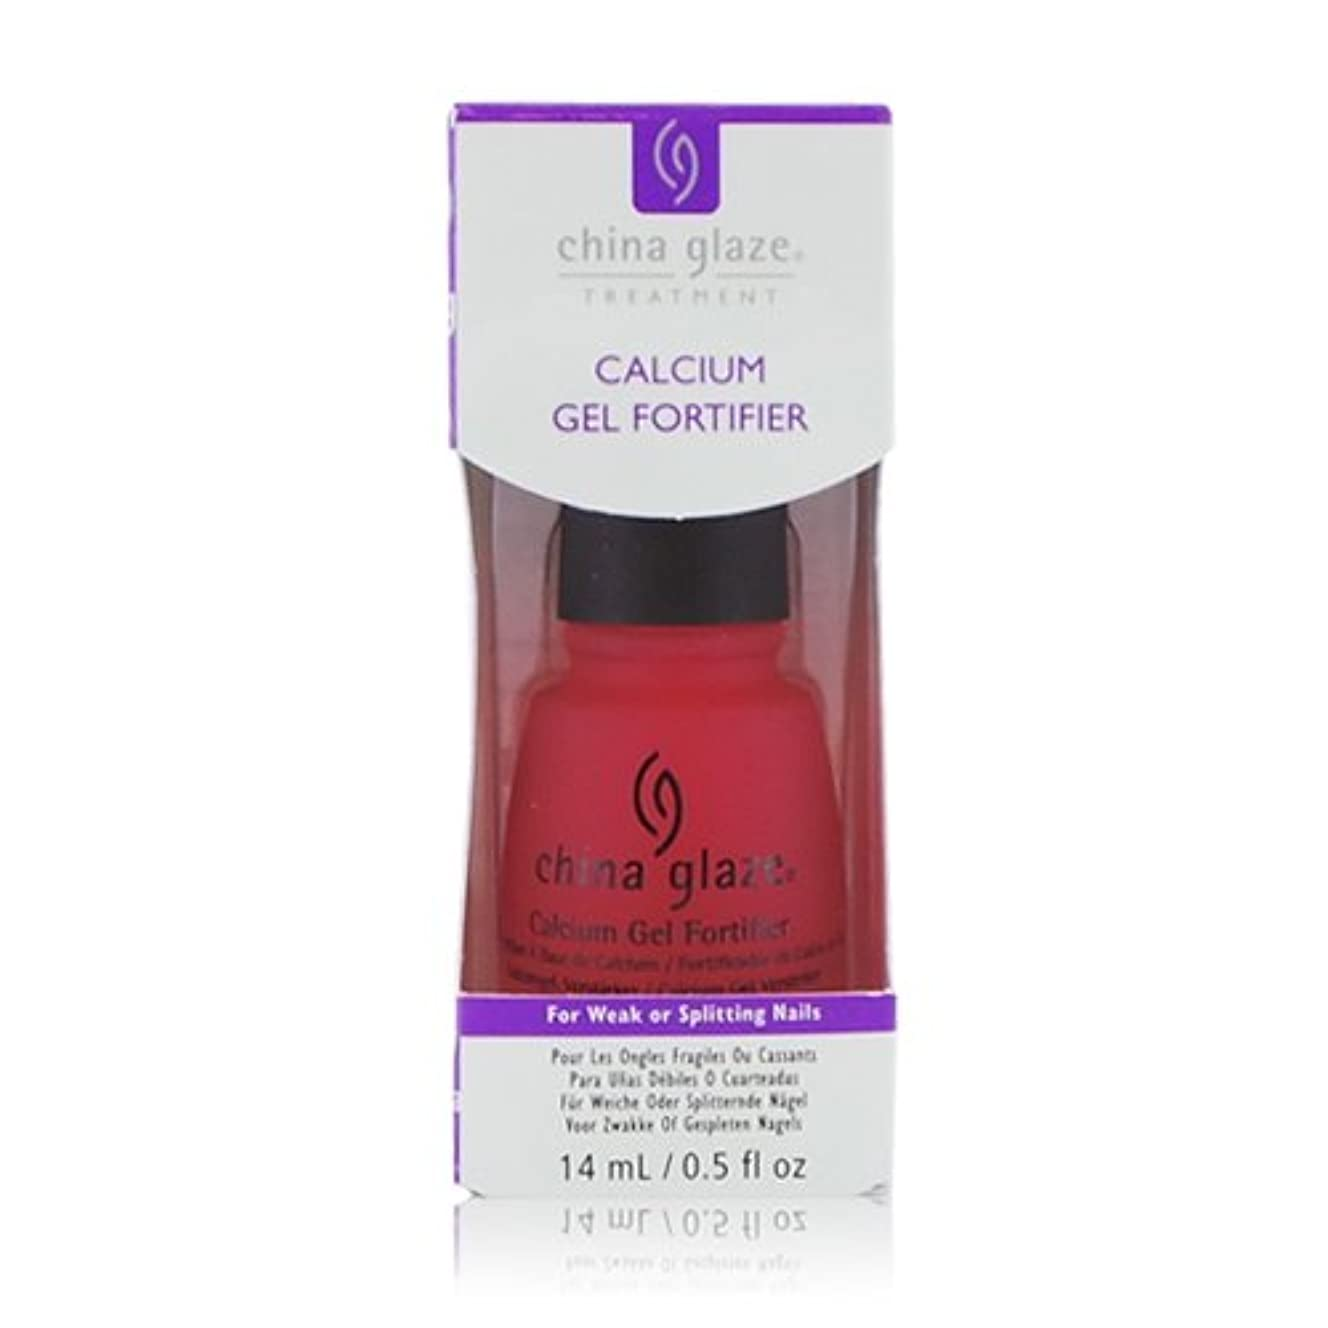 息苦しい配管工肥沃な(6 Pack) CHINA GLAZE Calcium Gel Fortifier - CGT906 (New Packaging) (並行輸入品)